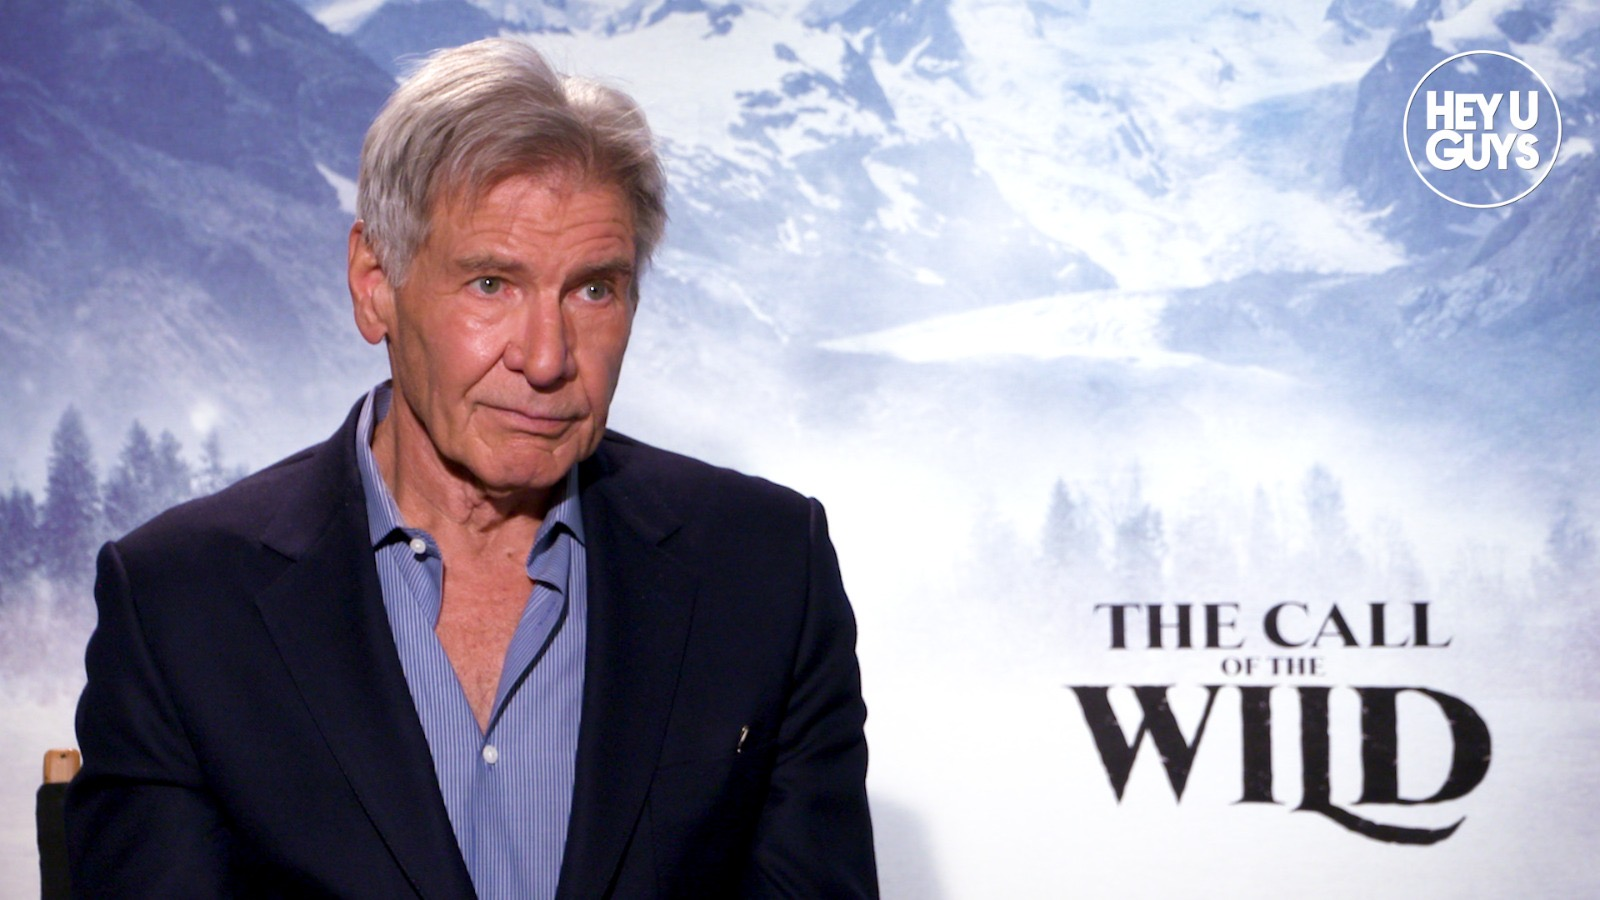 Harrison Ford The Call of the Wild Interview